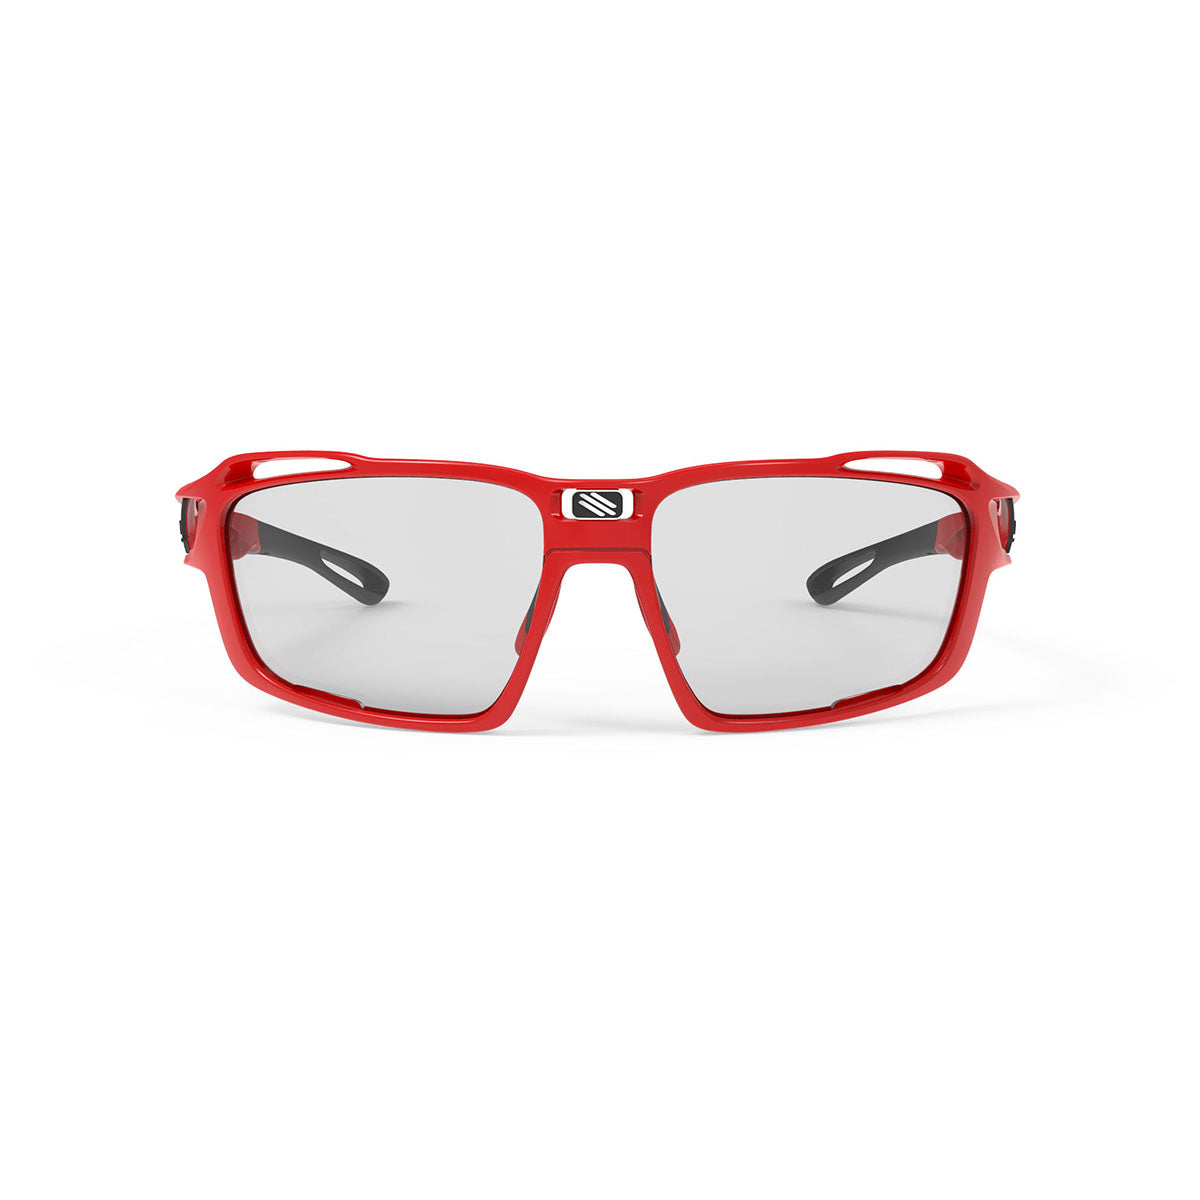 Rudy Project - Sintryx - frame color: Fire Red Gloss - lens color: ImpactX-2 Photochromic Clear to Black - Bumper Color:  - photo angle: Front View Variant Hover Image